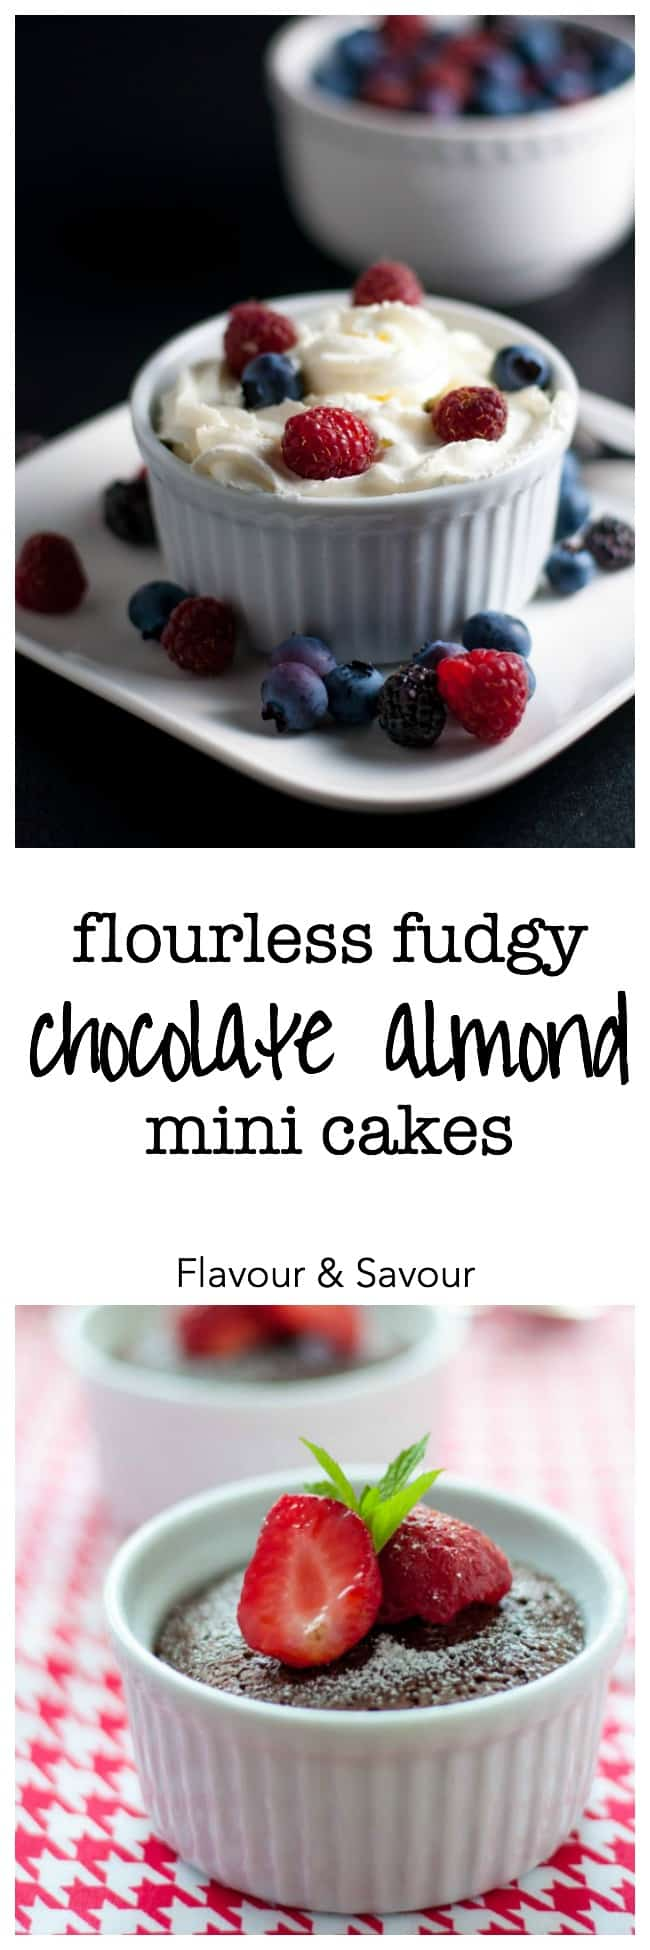 Try these Flourless Fudgy Mini Chocolate Almond Cakes when you just want a taste! They're decadently delicious, and gluten-free. Rave reviews. |www.flavourandsavour.com